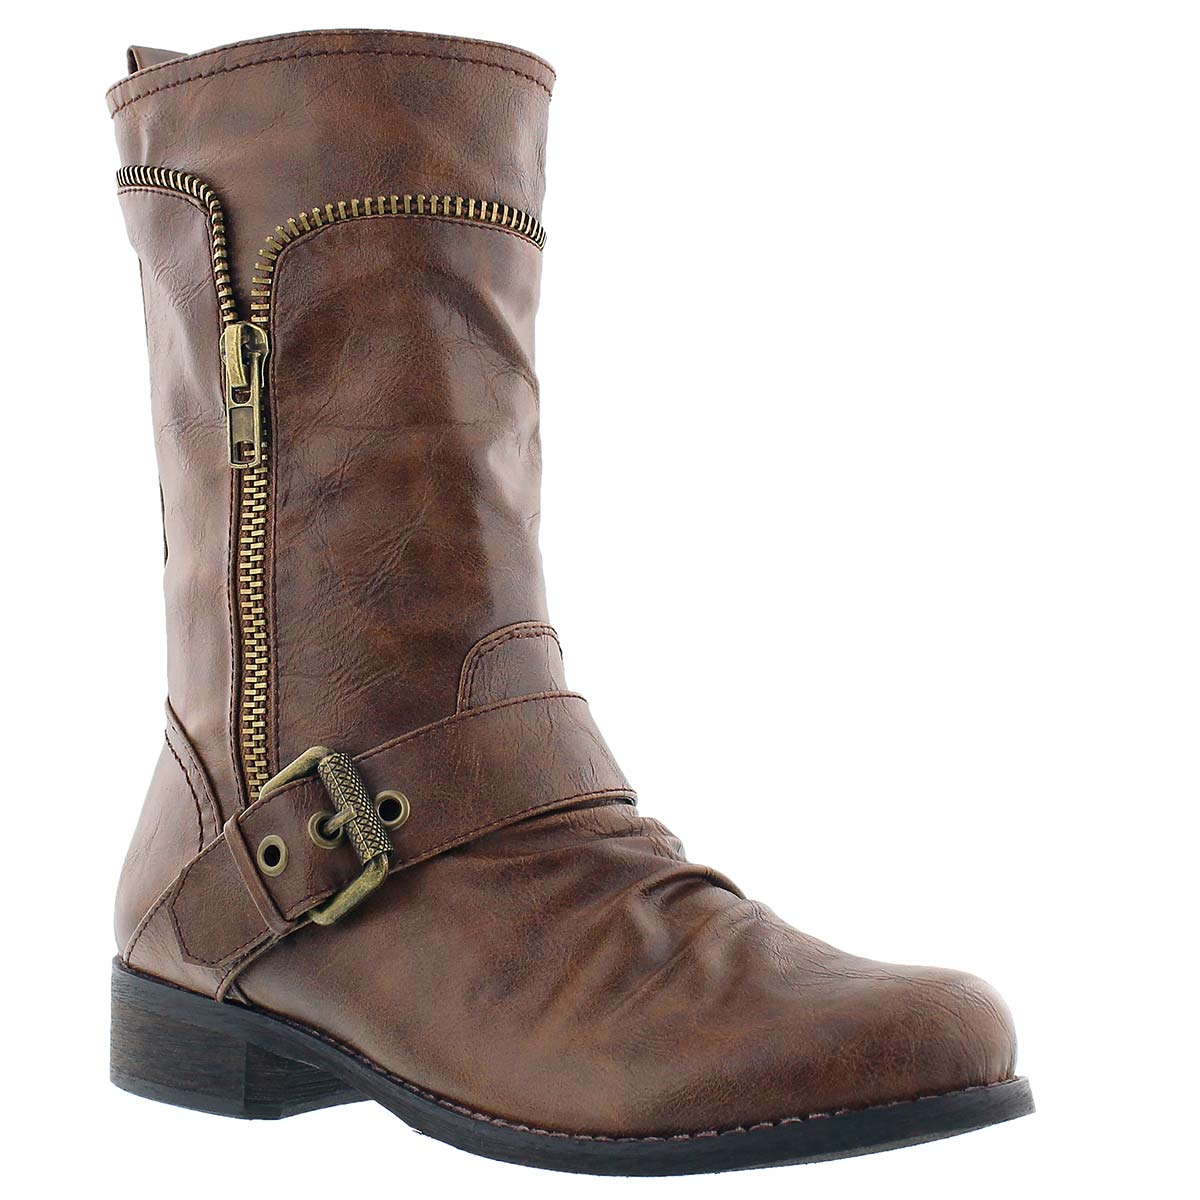 Lds Bellamy camel casual buckle boot